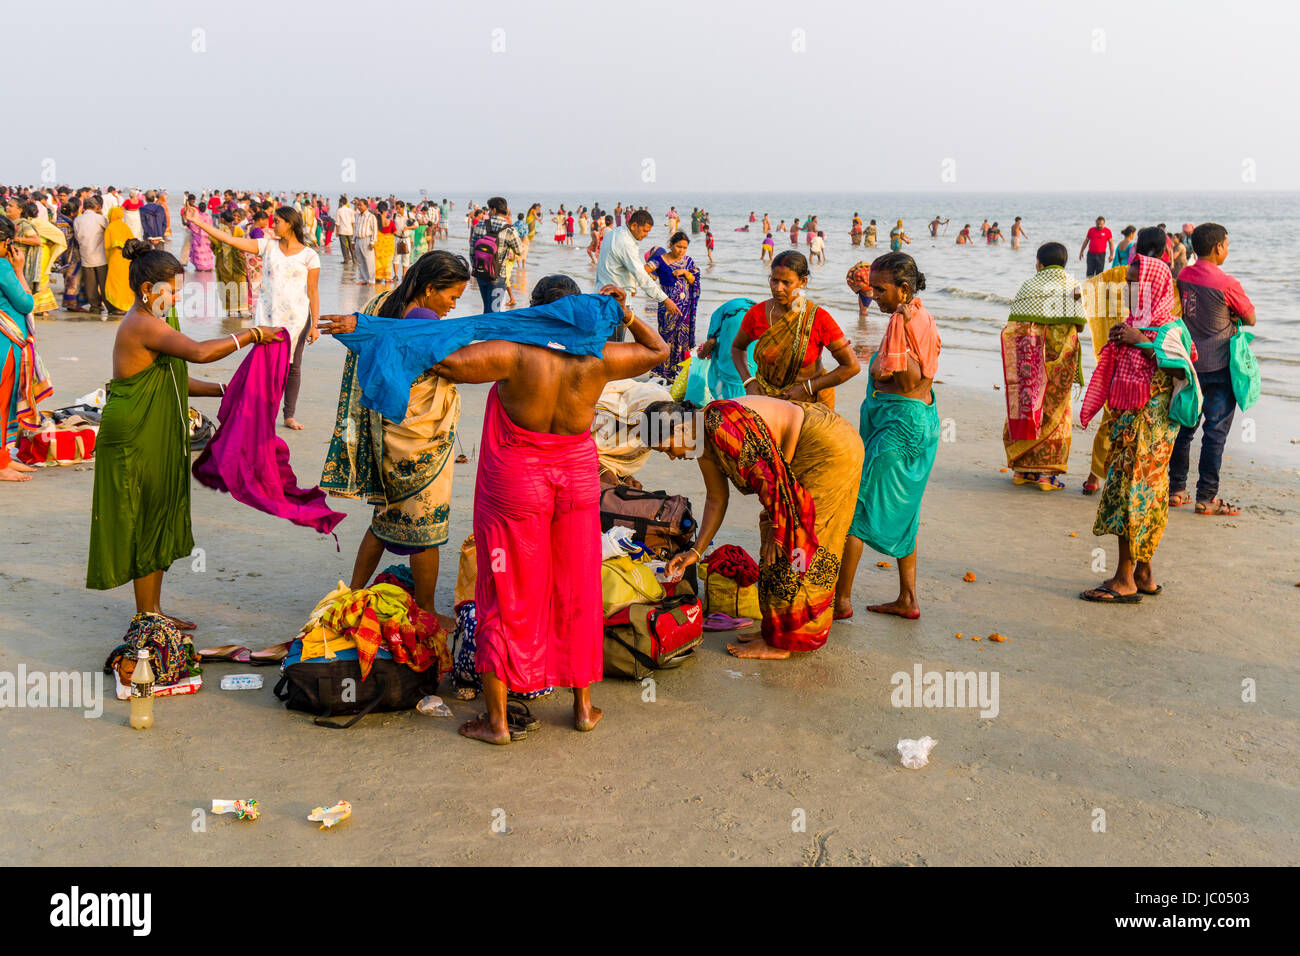 Hundreds of pilgrims are gathering on the beach of Ganga Sagar, celebrating Maghi Purnima festival Stock Photo